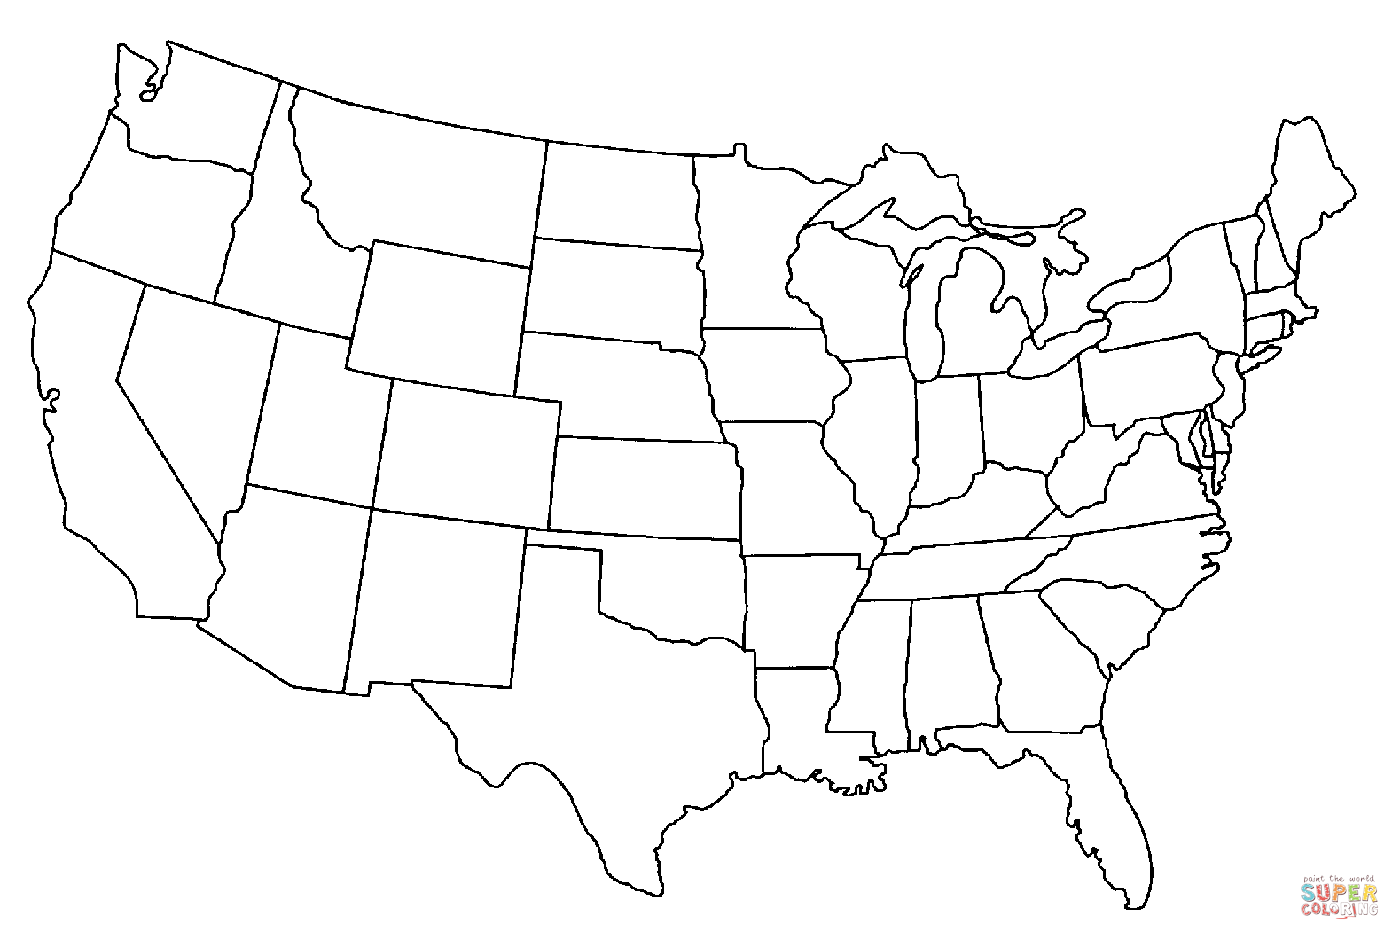 Clipart of united states map outline transparent download Map Of the United States Of America coloring page | Free Printable ... transparent download